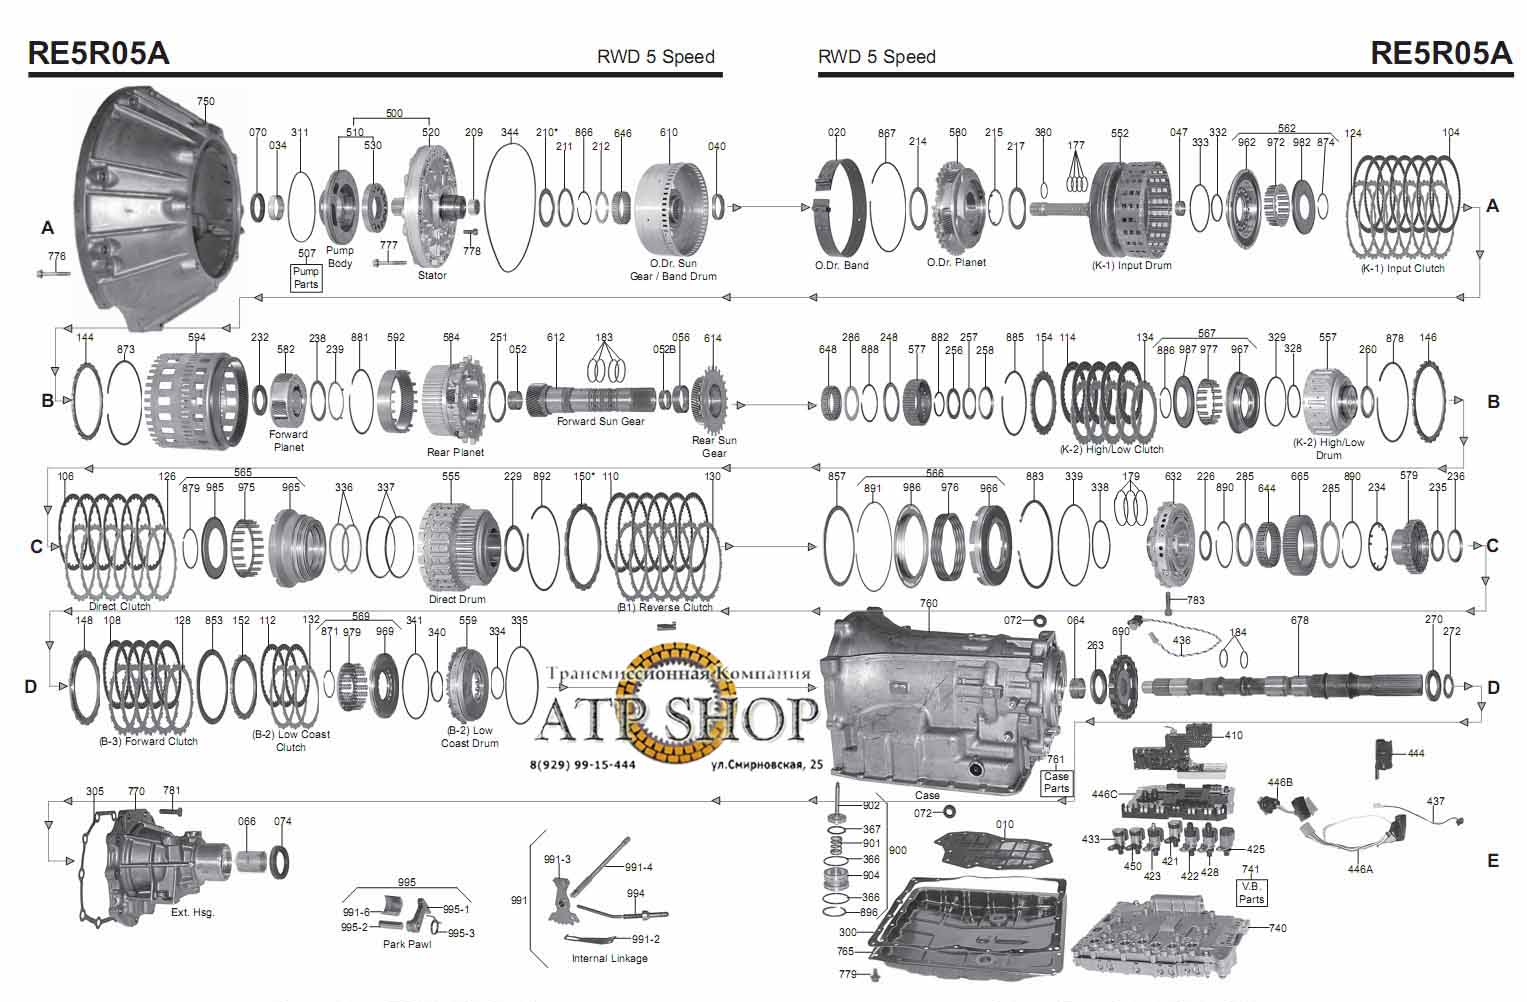 4r70w transmission wire diagram 1995 kawasaki bayou 220 wiring re5ro5a valve body and fuse box